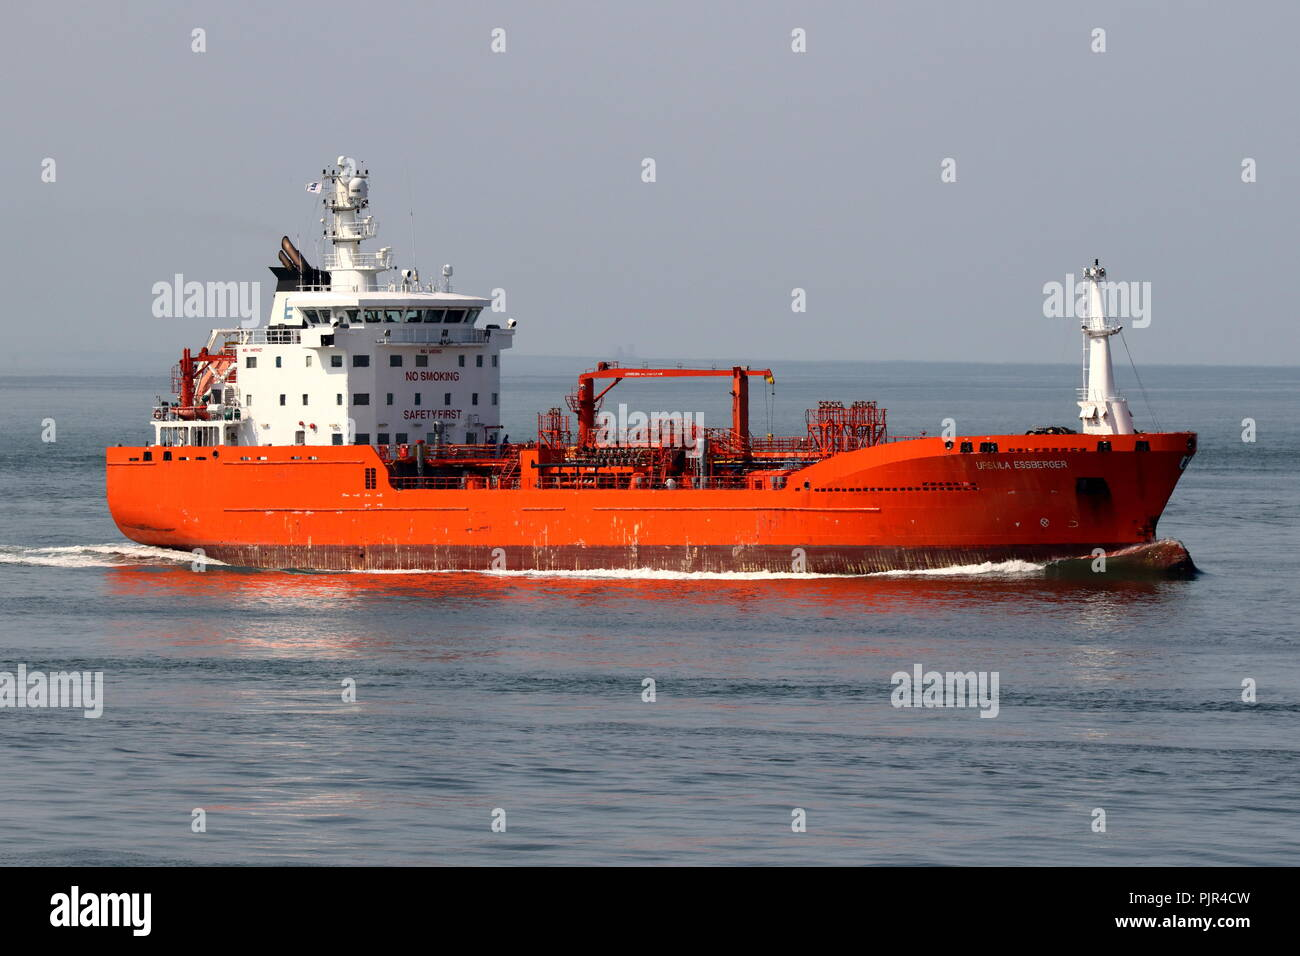 The tanker Ursula Essberger reaches the port of Rotterdam on 27 July 2018. - Stock Image